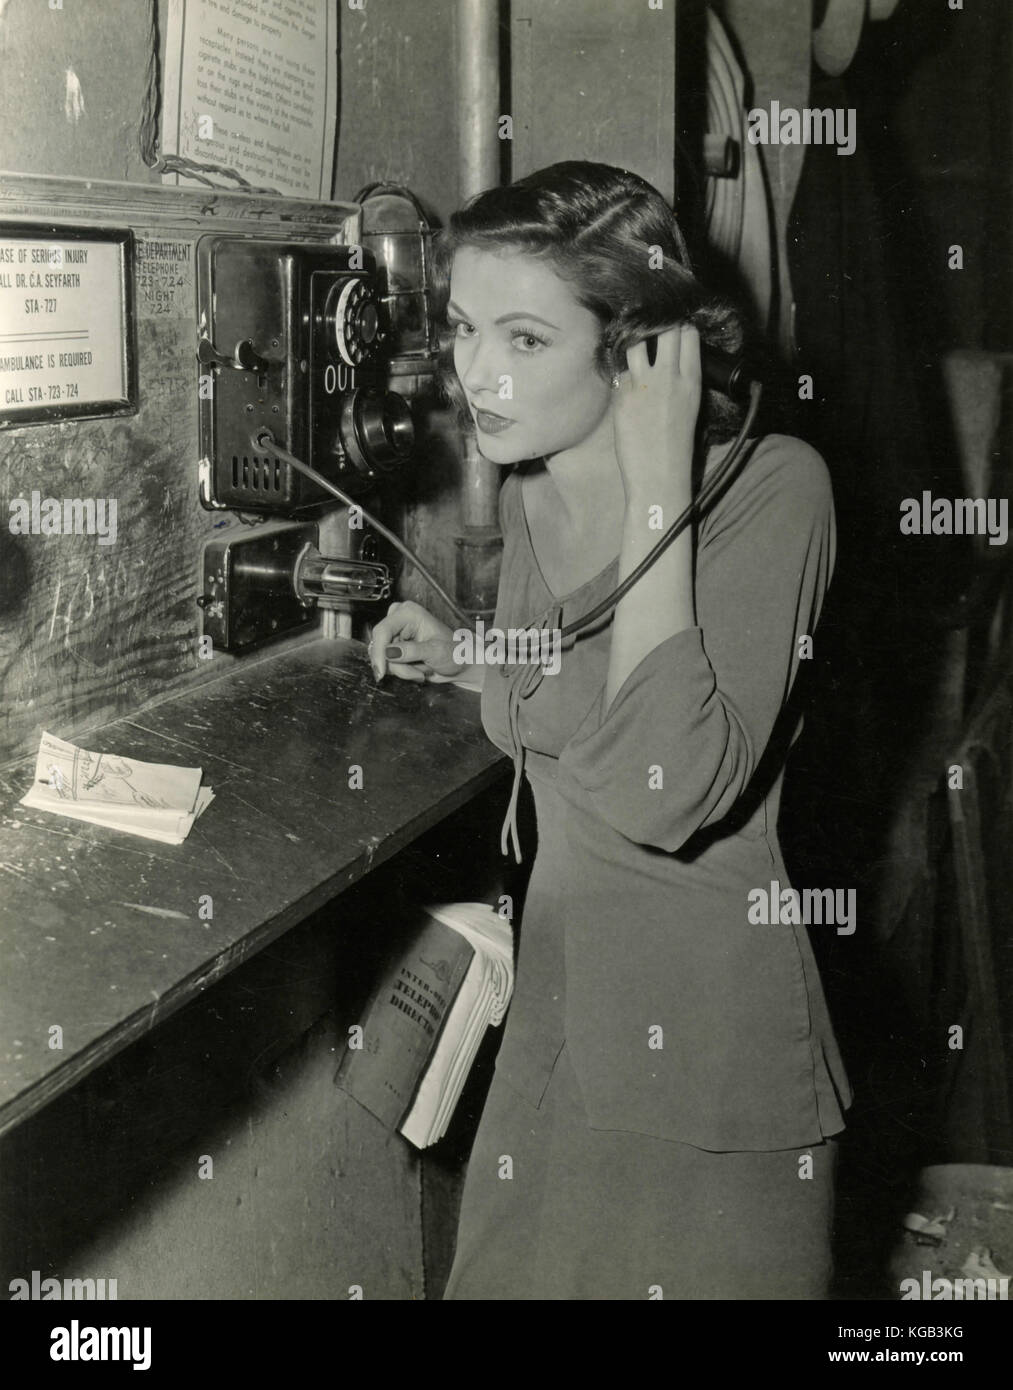 American actress Gene Tierney speaks at the telephone - Stock Image